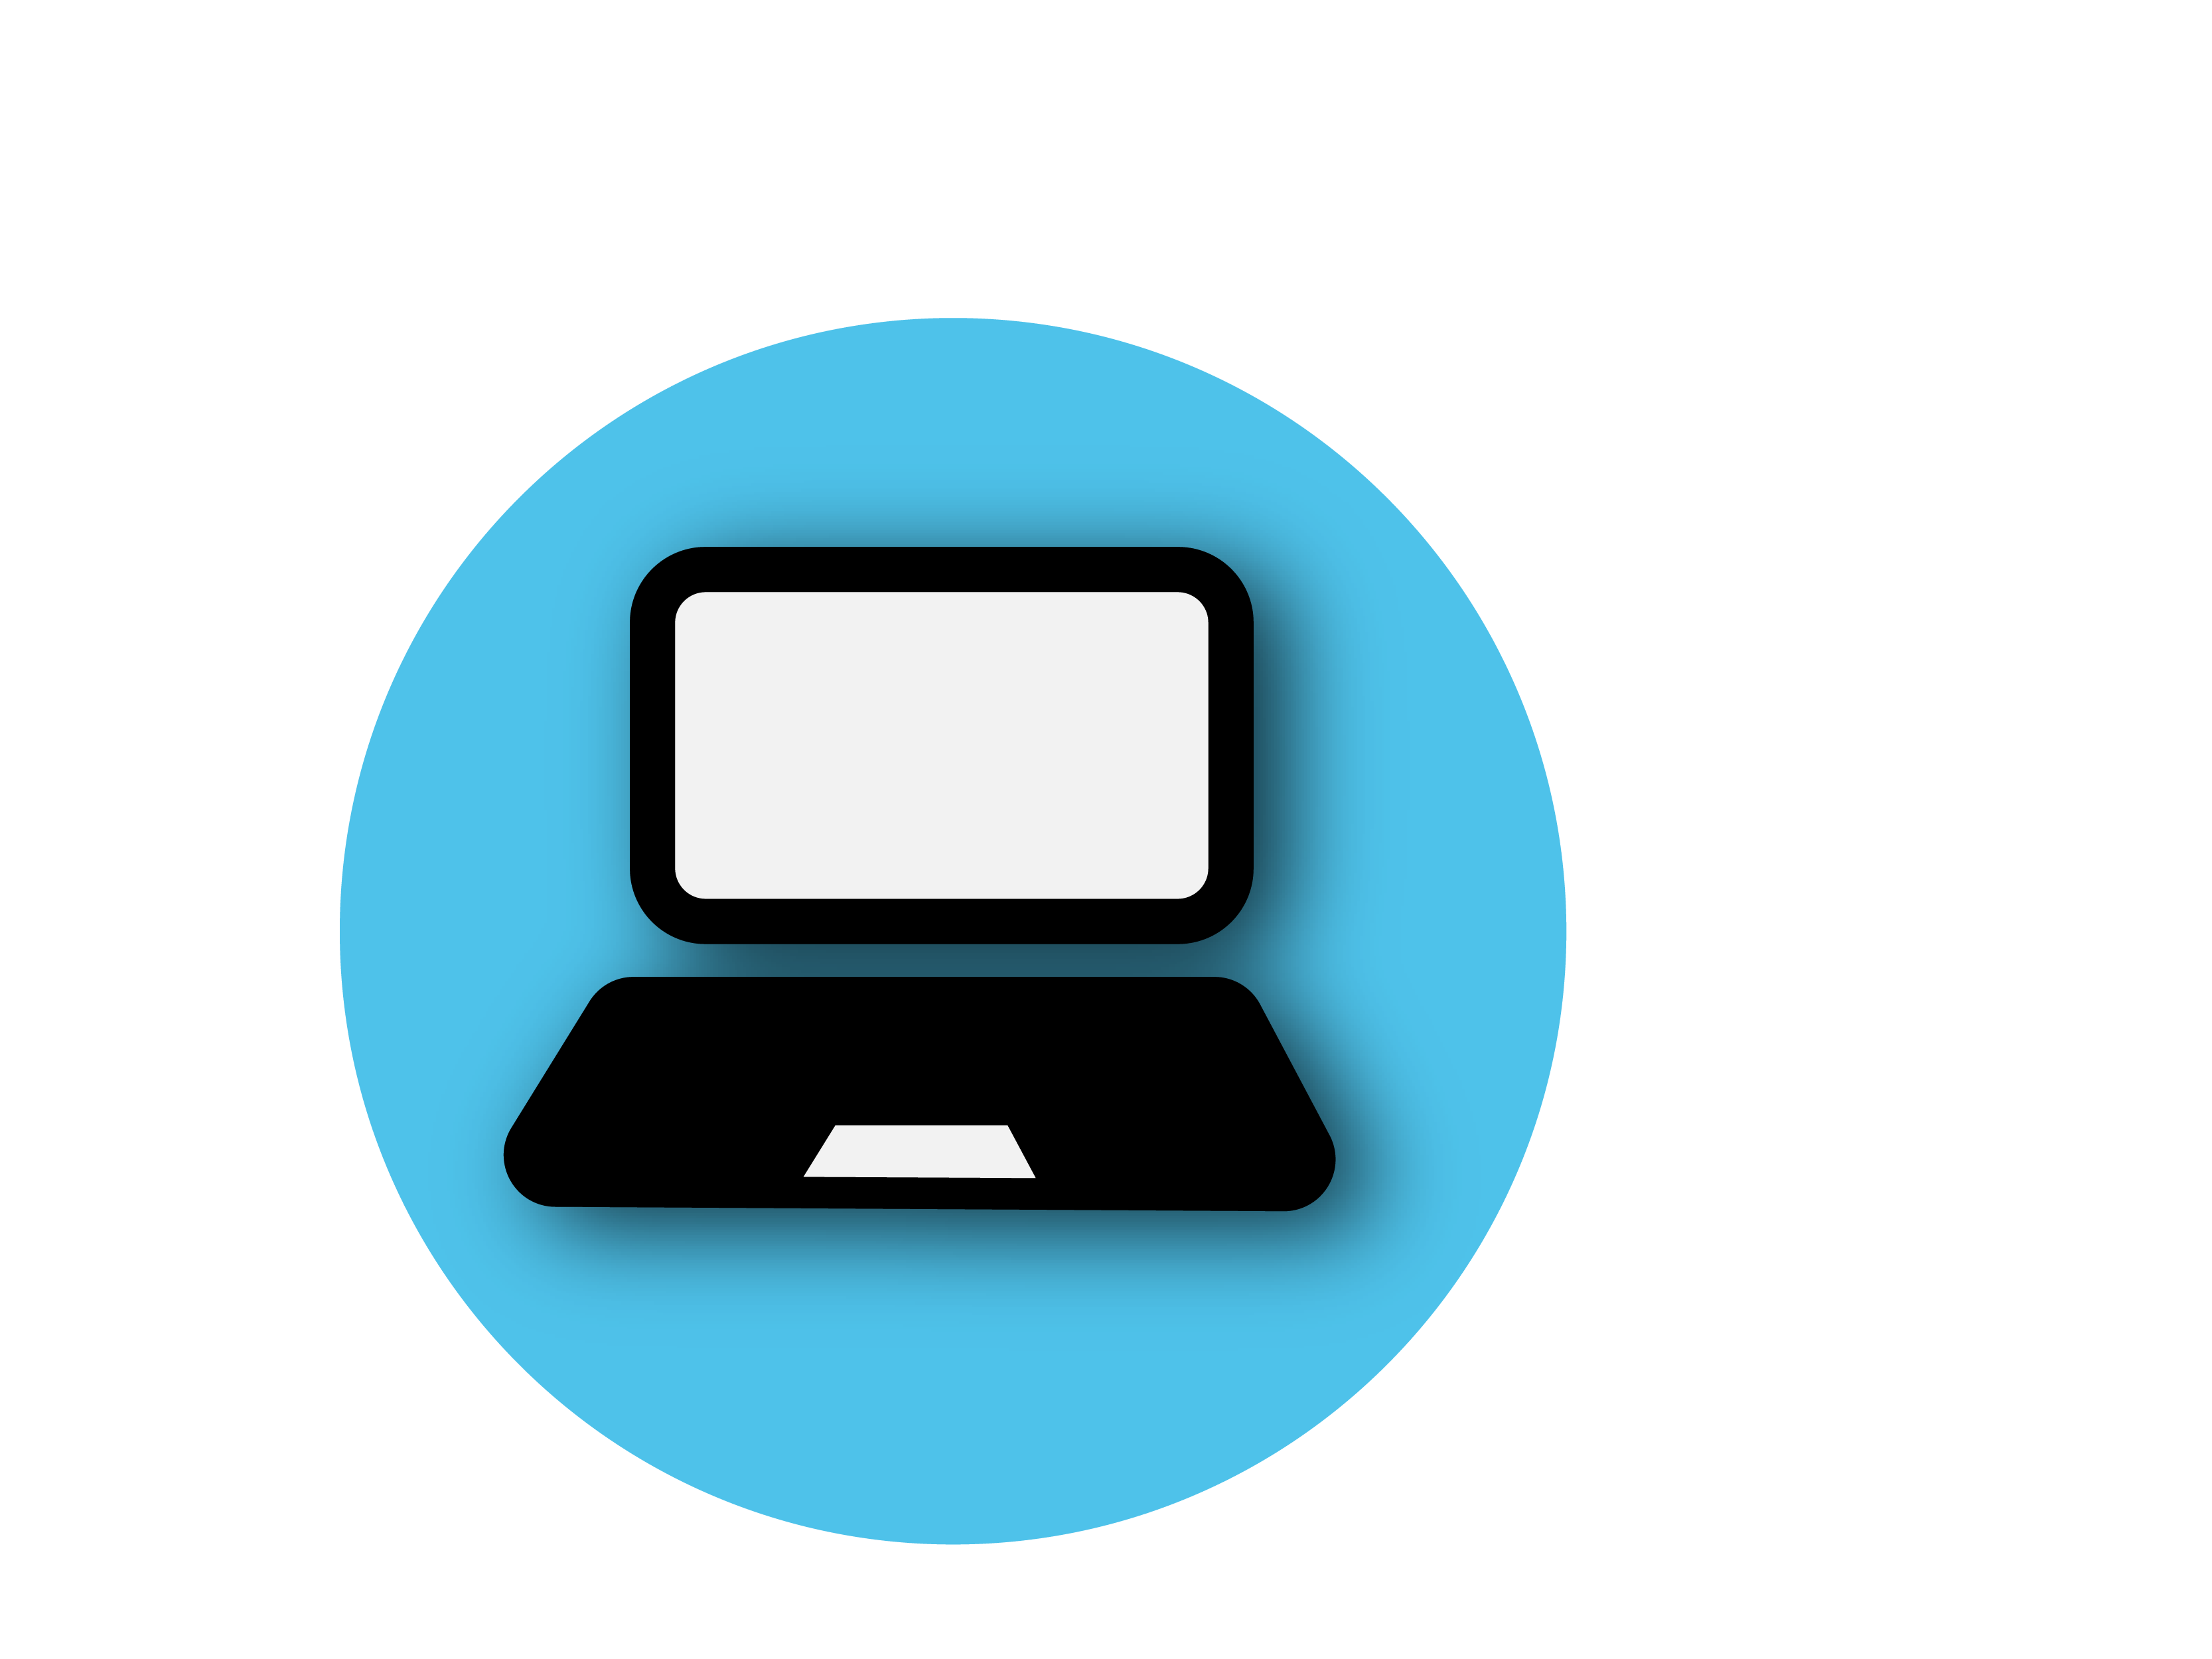 Download Laptop Symbol PNG Image for Free.